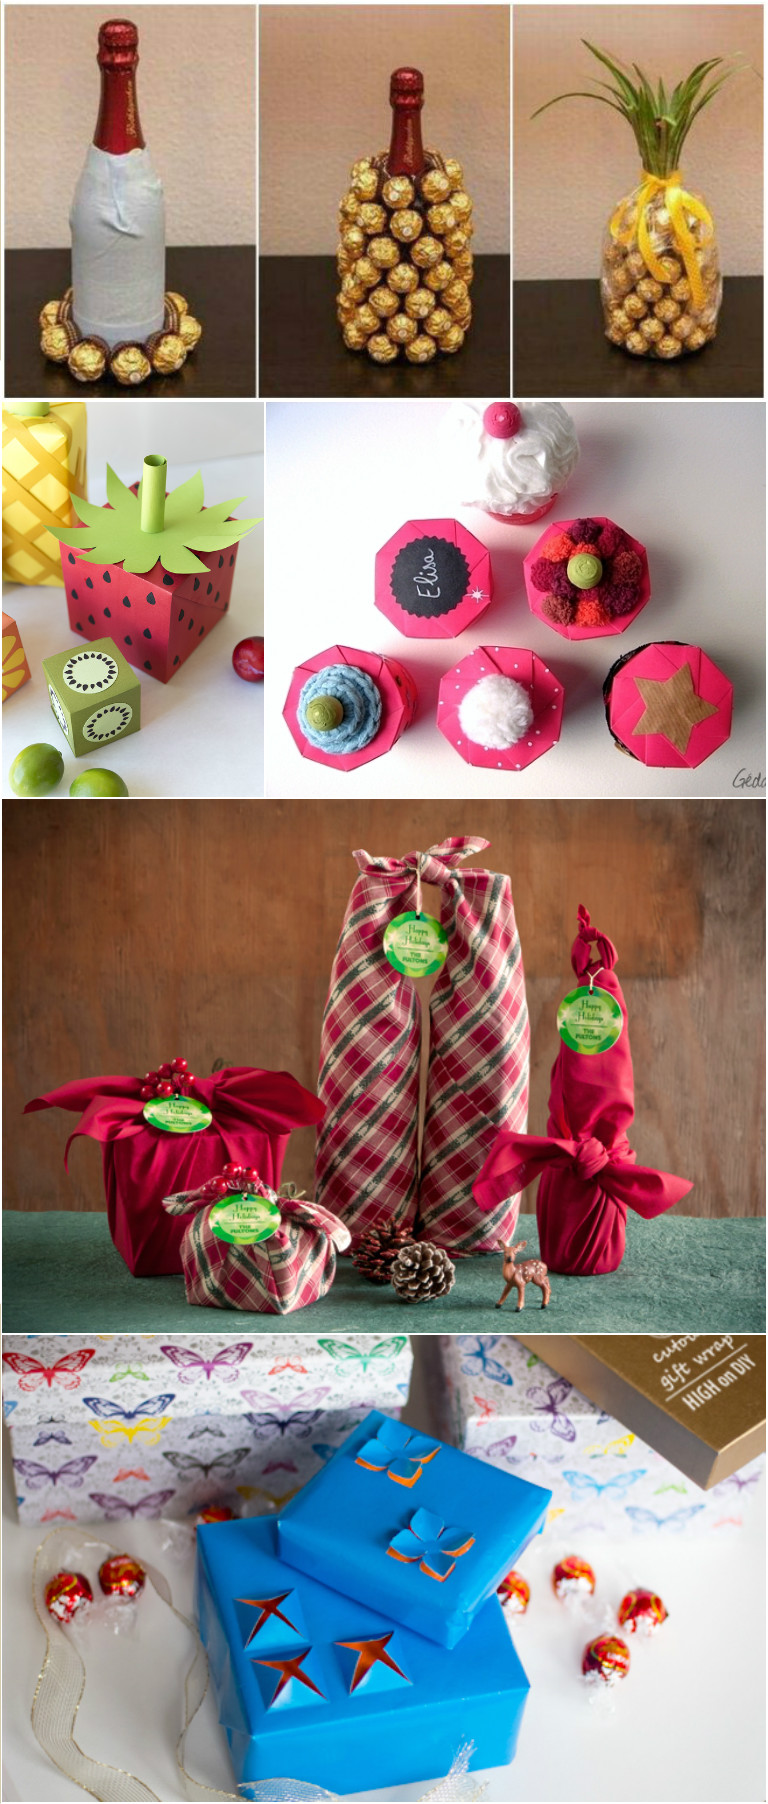 30+ Amazing Gift Wrapping Ideas Everyone Should Know - Pondic